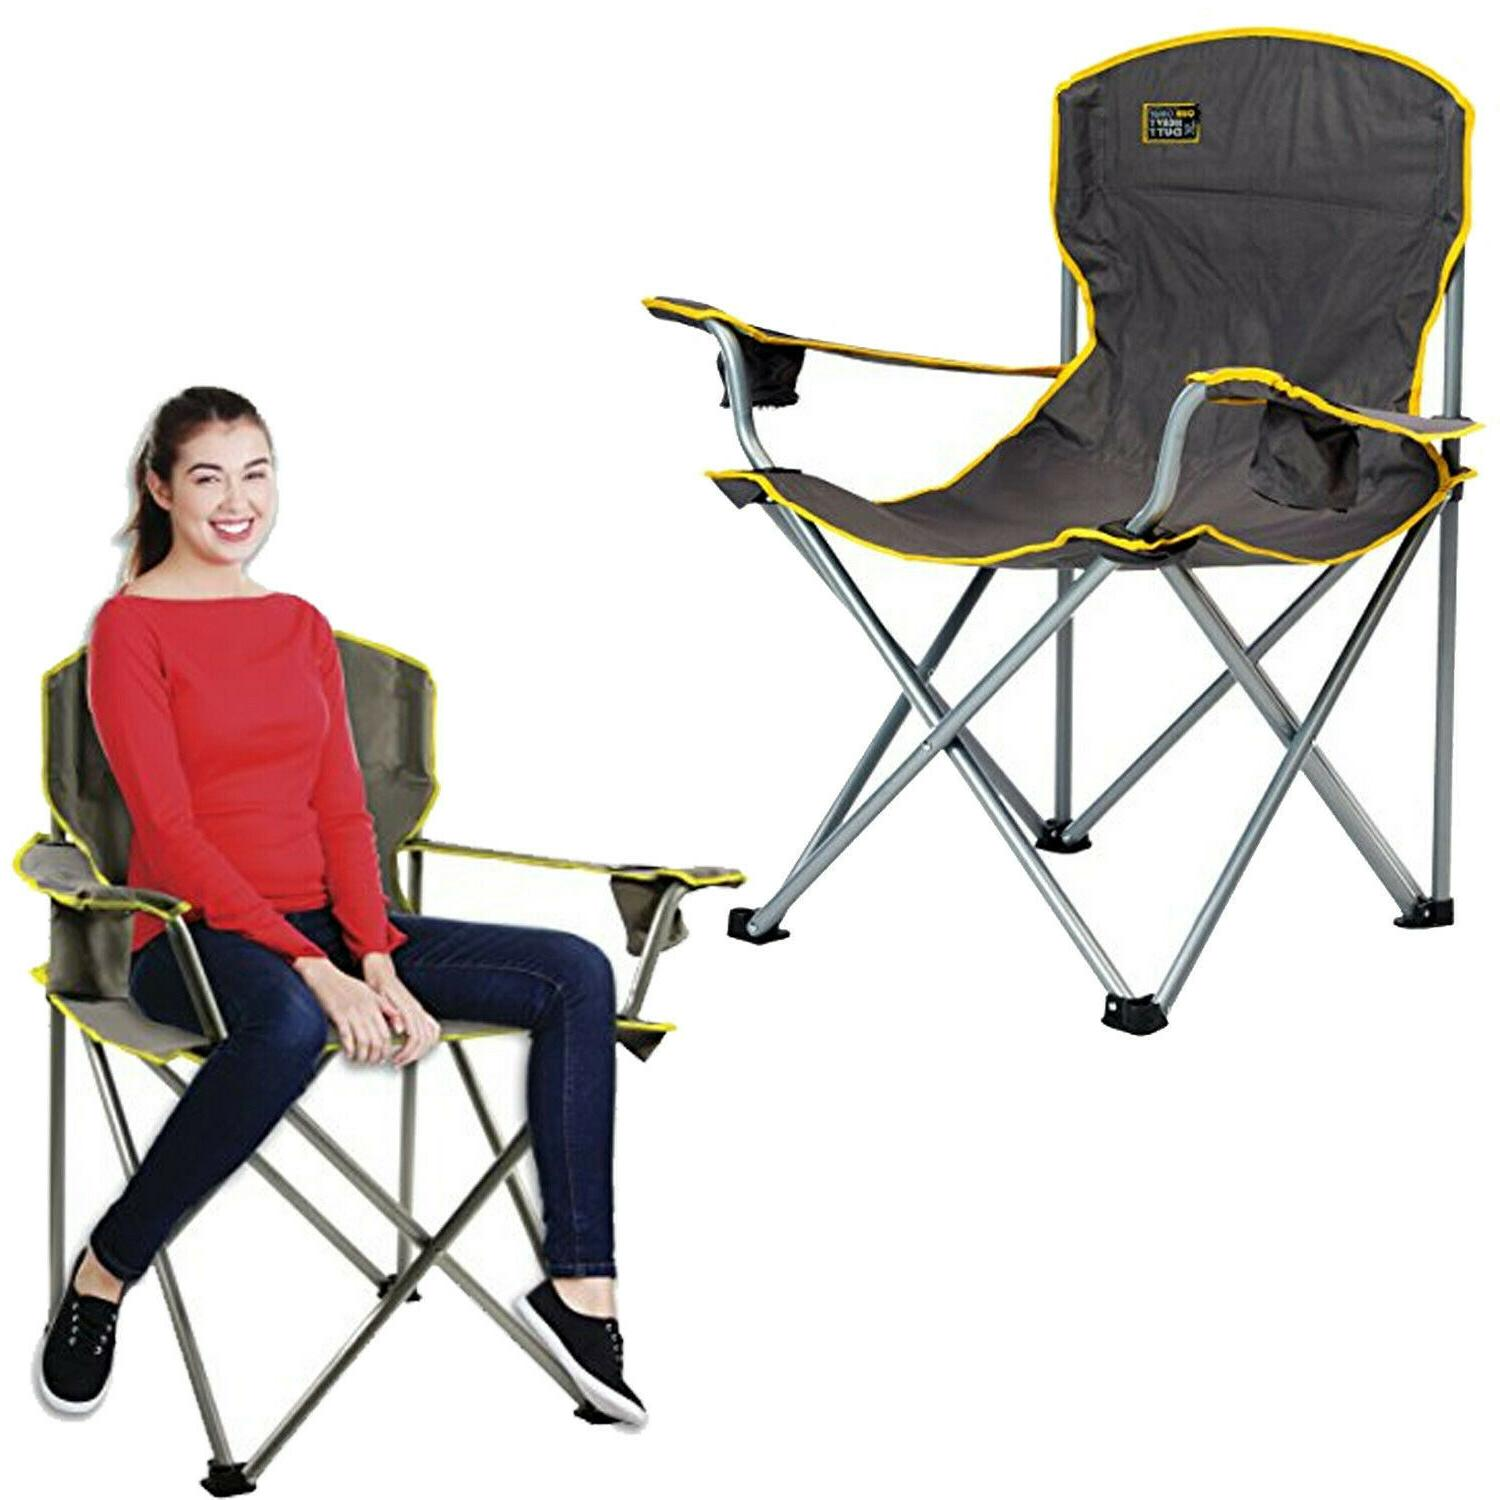 Heavy Duty Chair Sturdy Oversized Camping Portable Folding L